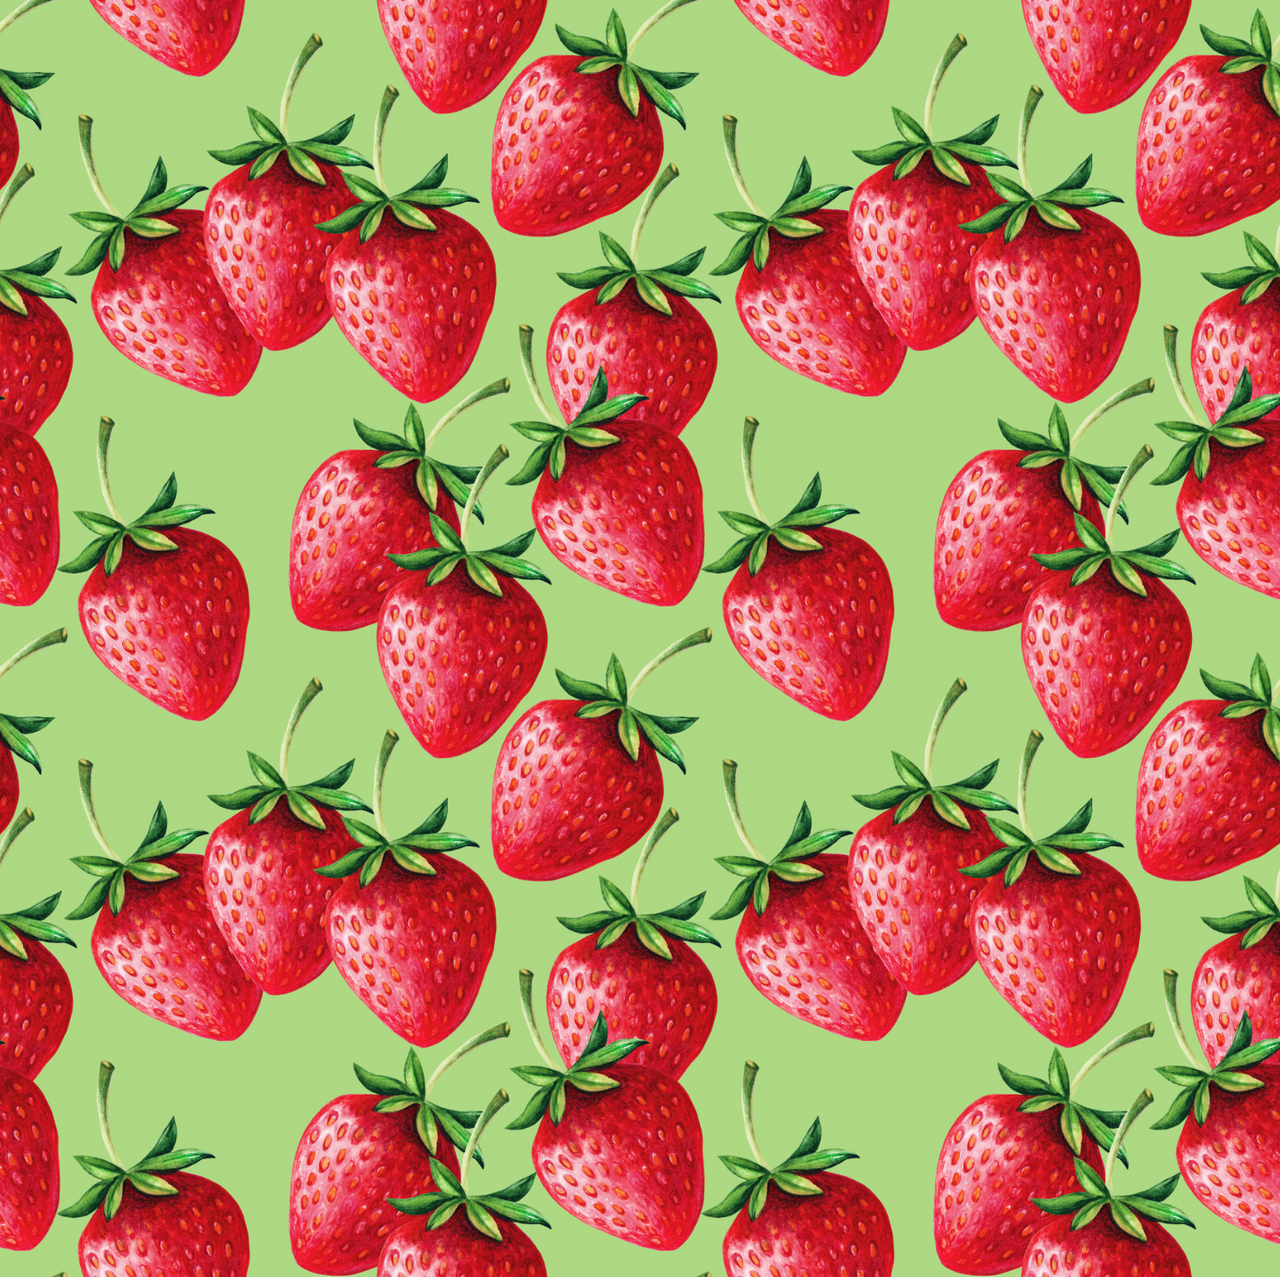 Strawberries Organic Jersey, Green by Ernst Textil